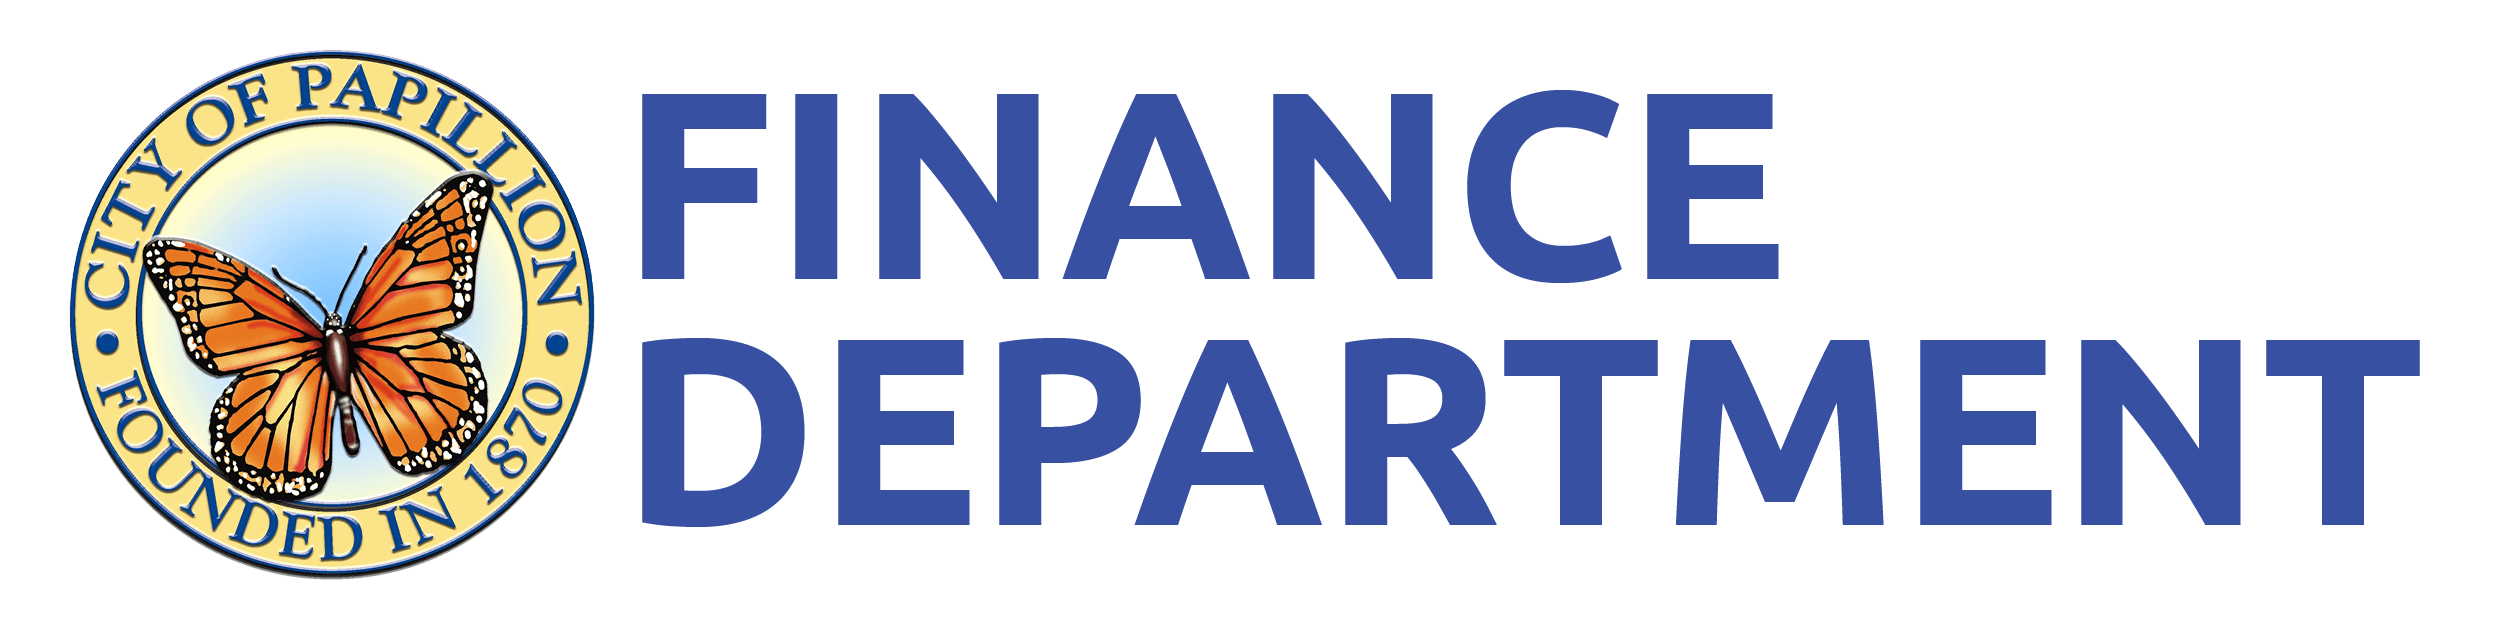 Finance Department logo